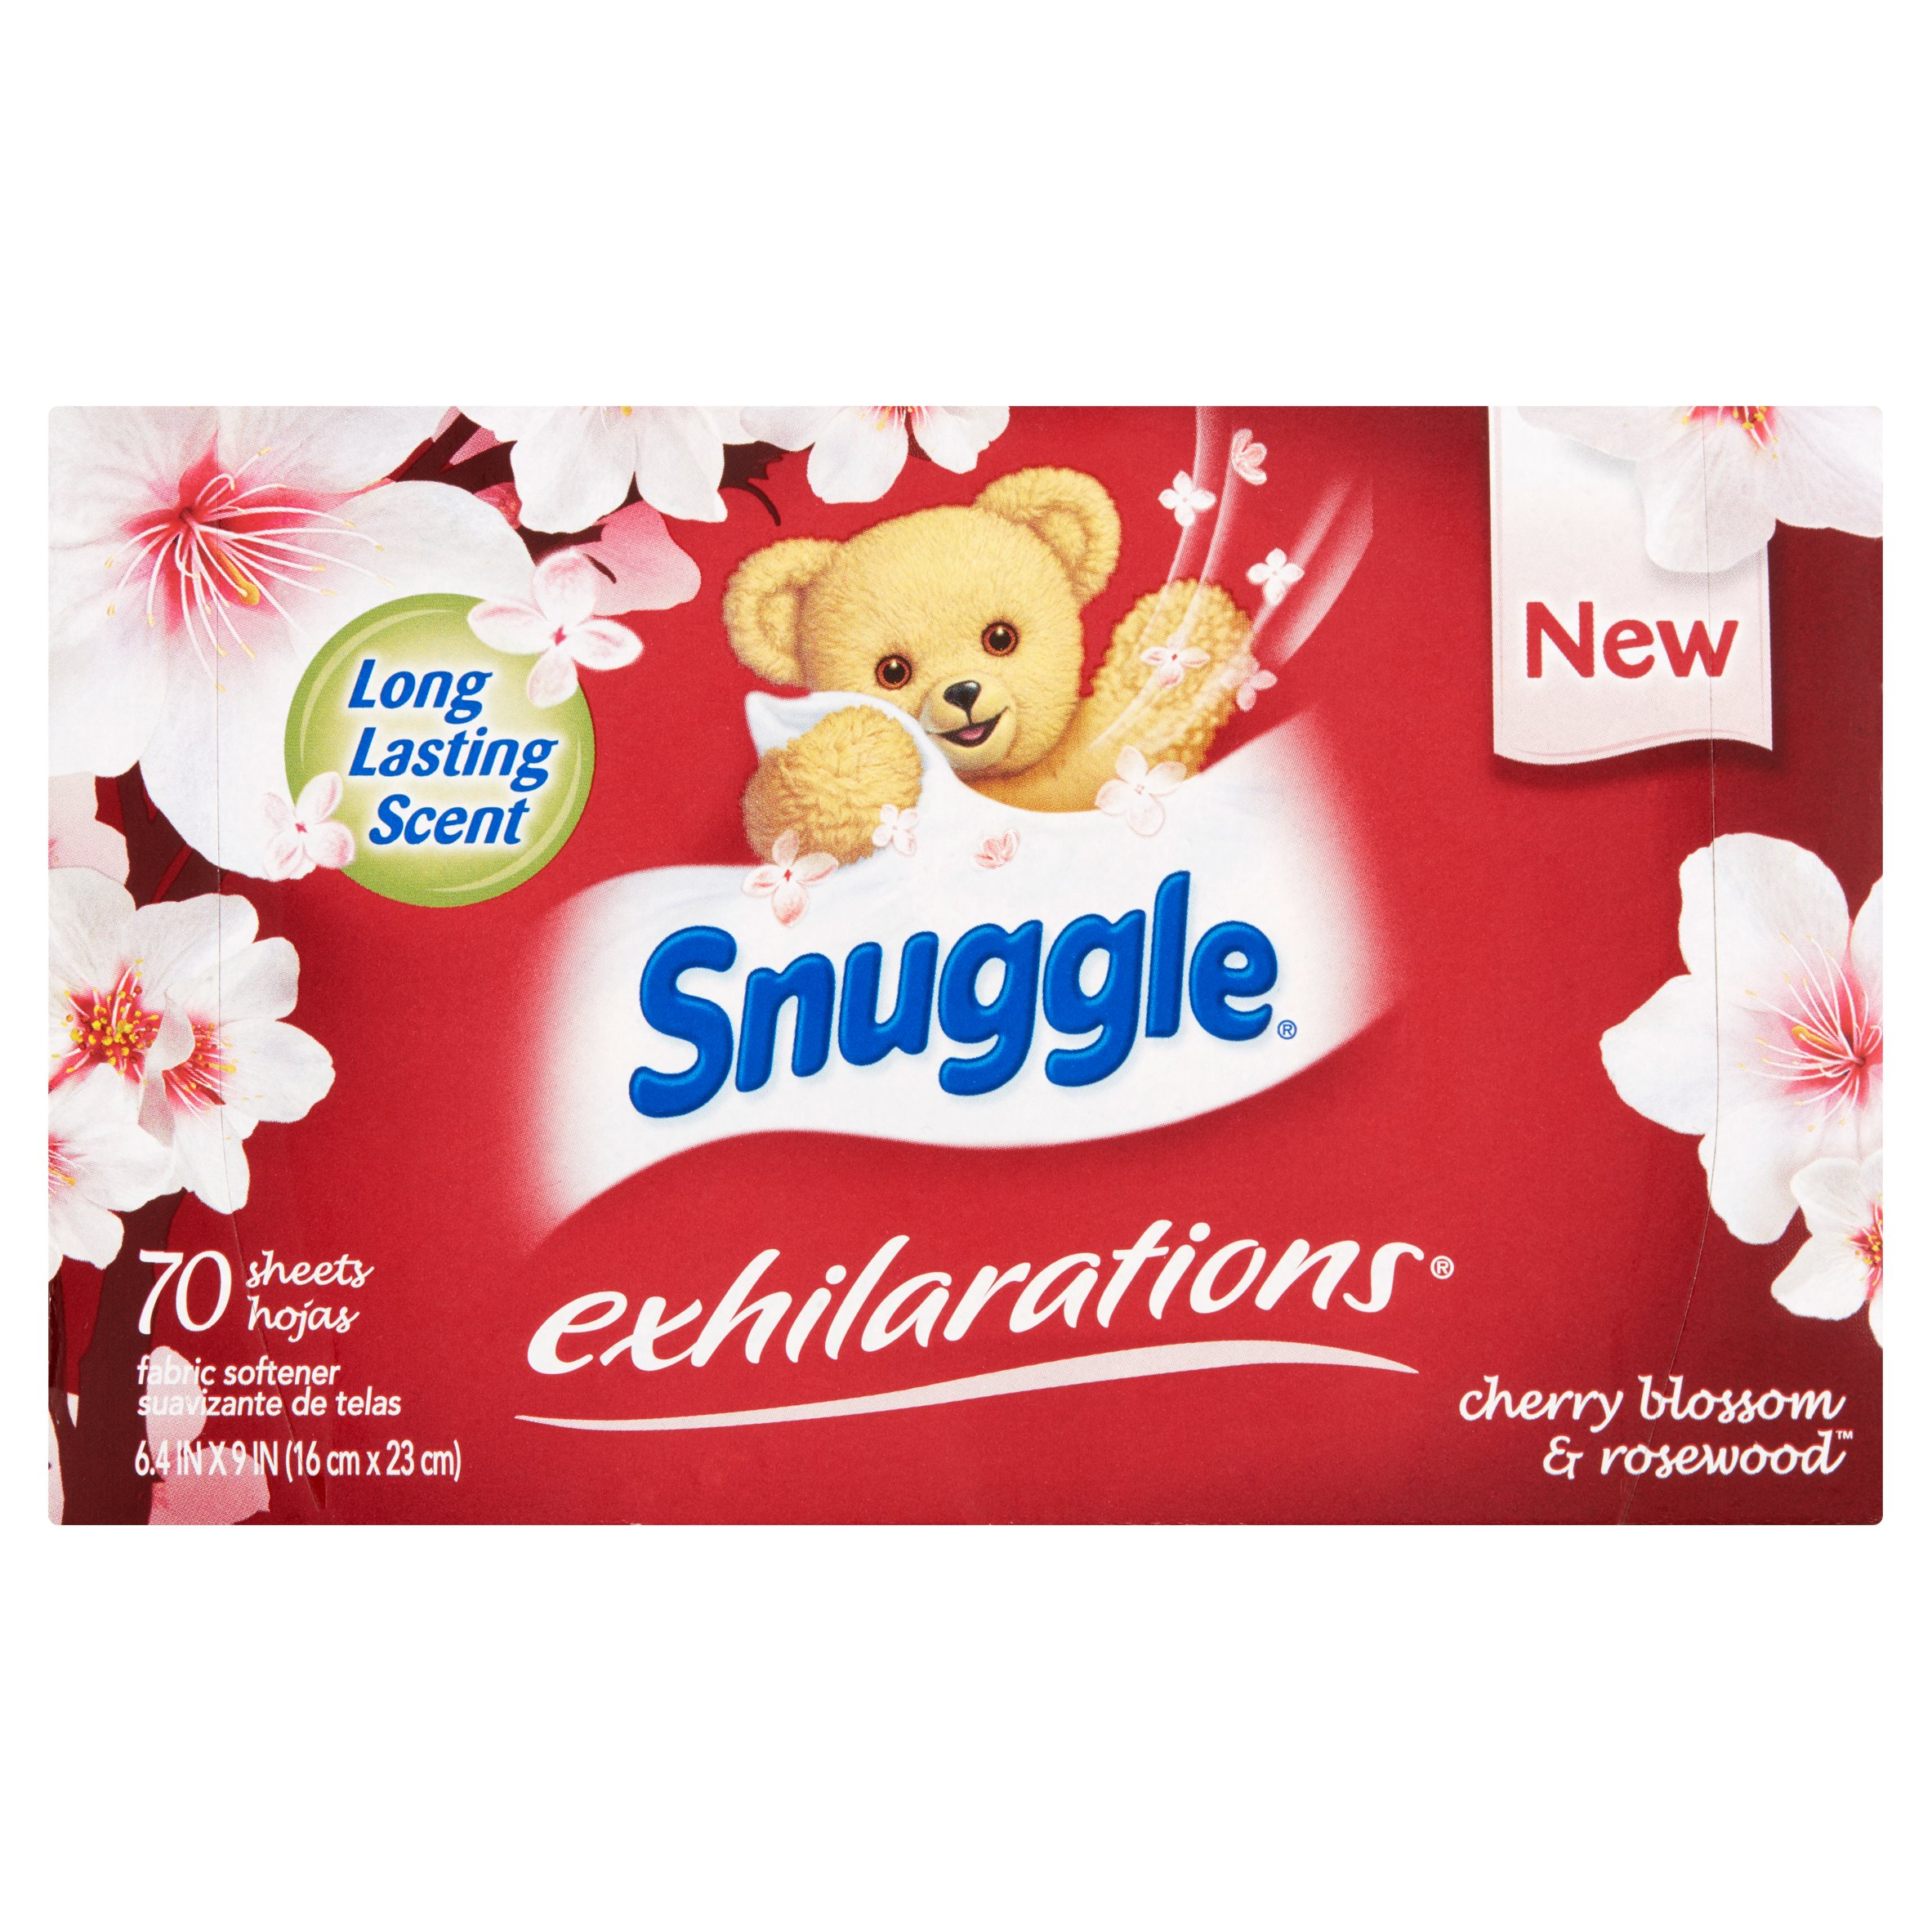 Snuggle Exhilarations Cherry Blossom & Rosewood Fabric Softener Sheets, 70 sheets